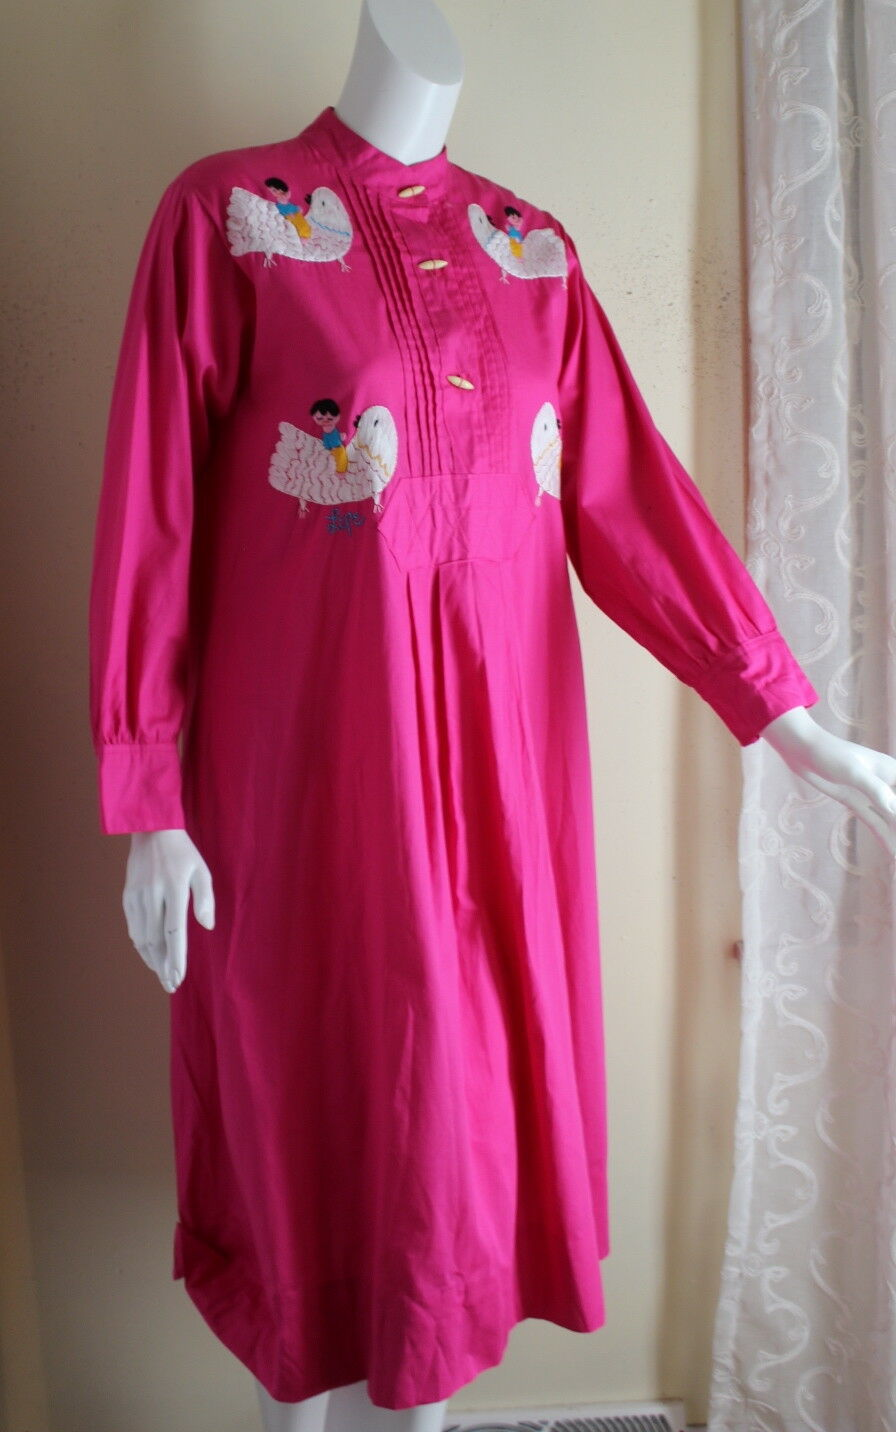 Vintage Dos Cabezas 1970s Art-to-Wear Pink Mexican Embroidered Shirt Dress S M